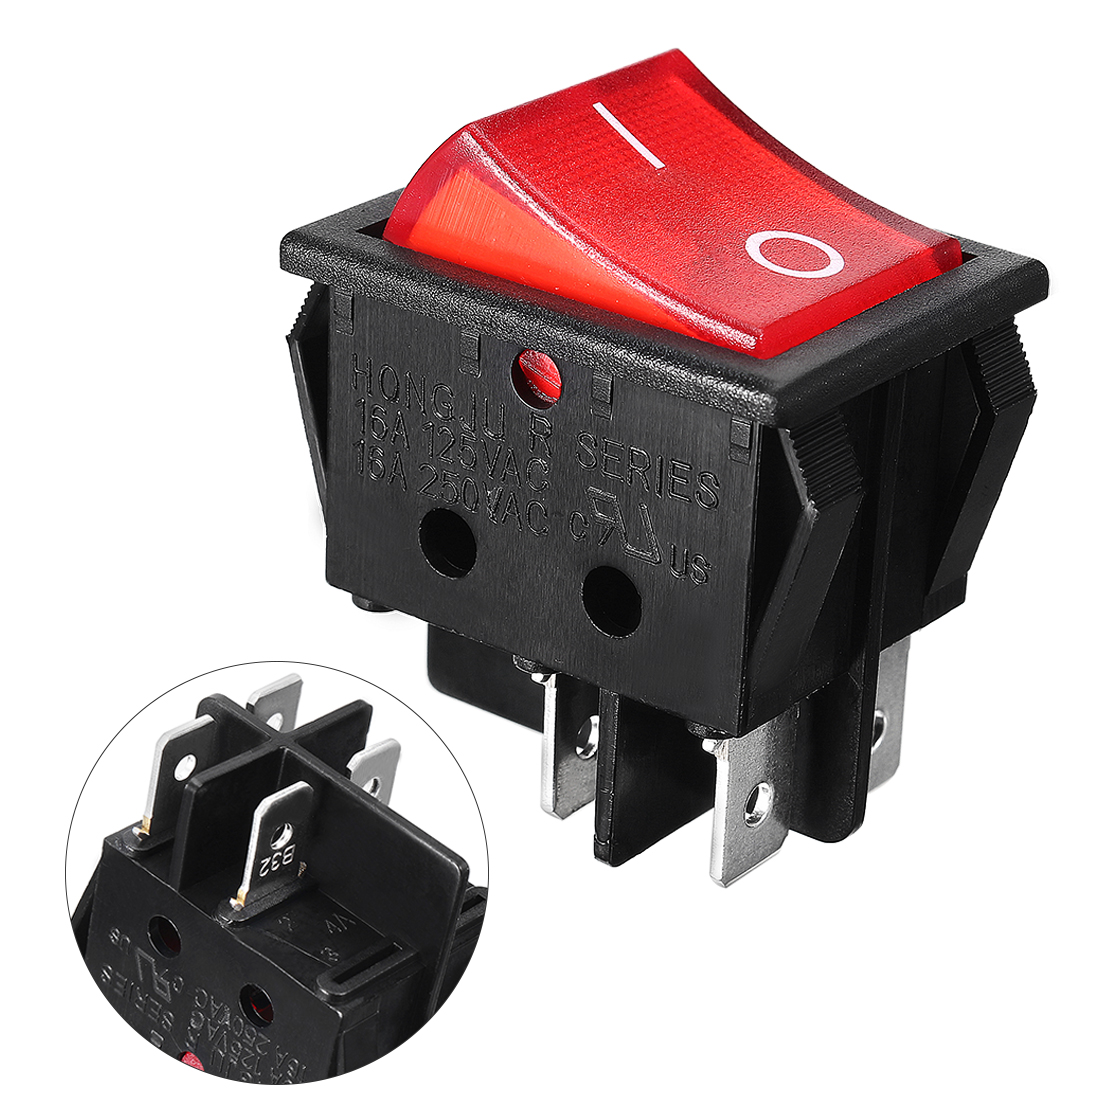 AC16A/250V Red Light Illuminated 4P DPST On/Off Rocker Switch